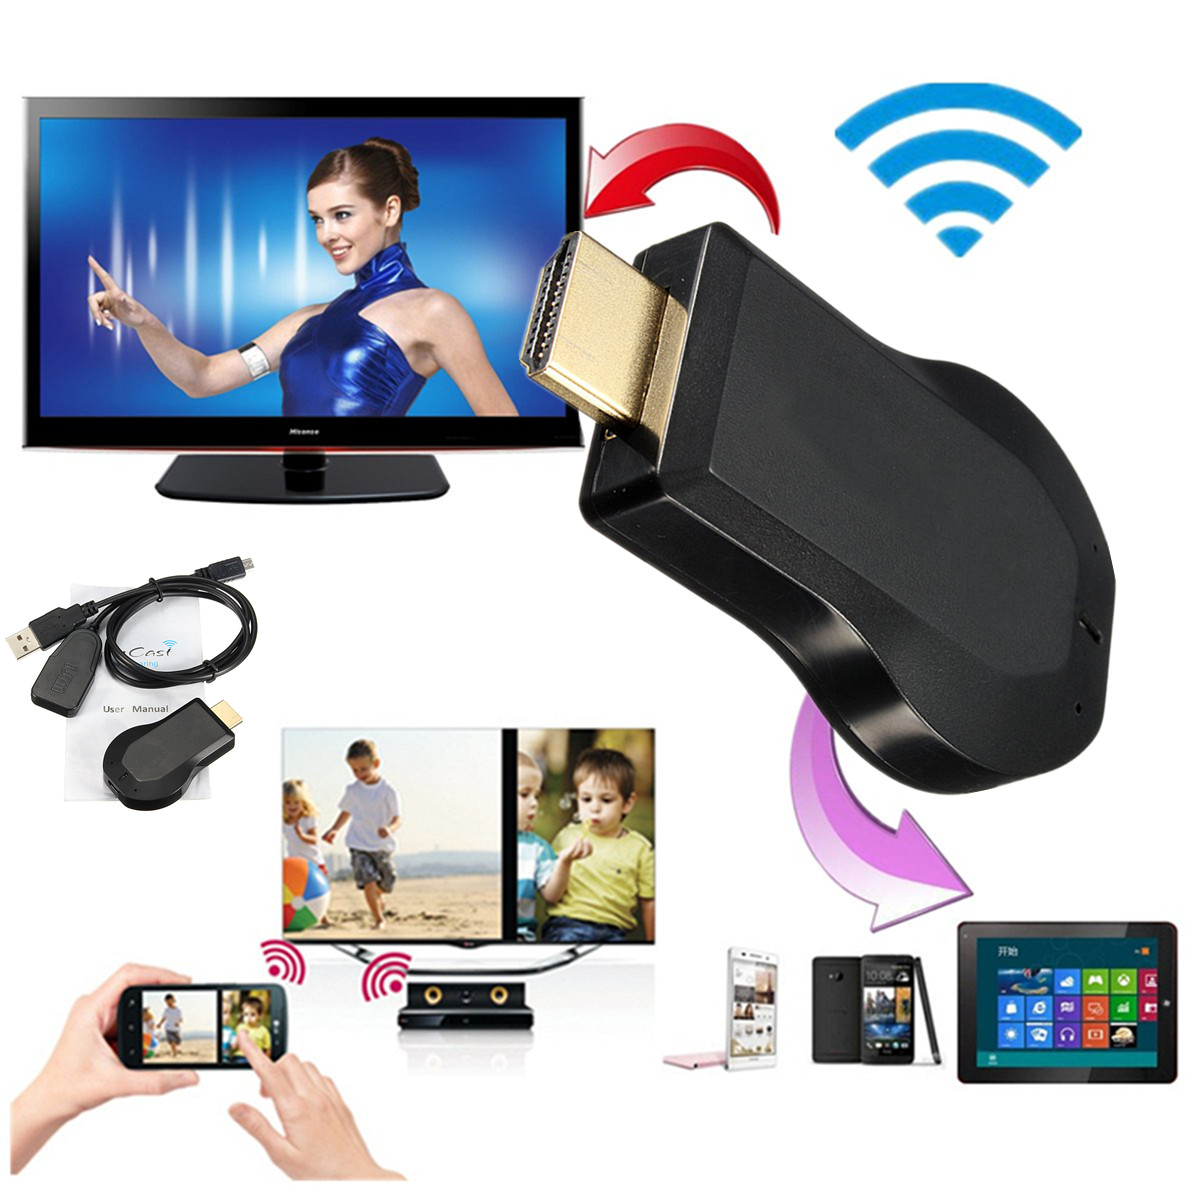 1080P HD WiFi Display Dongle,TV Stick Receiver Screen Mirror dongle, Streaming Media Player for iPhone iOS/Android/Windows/Projector/TV/MAC